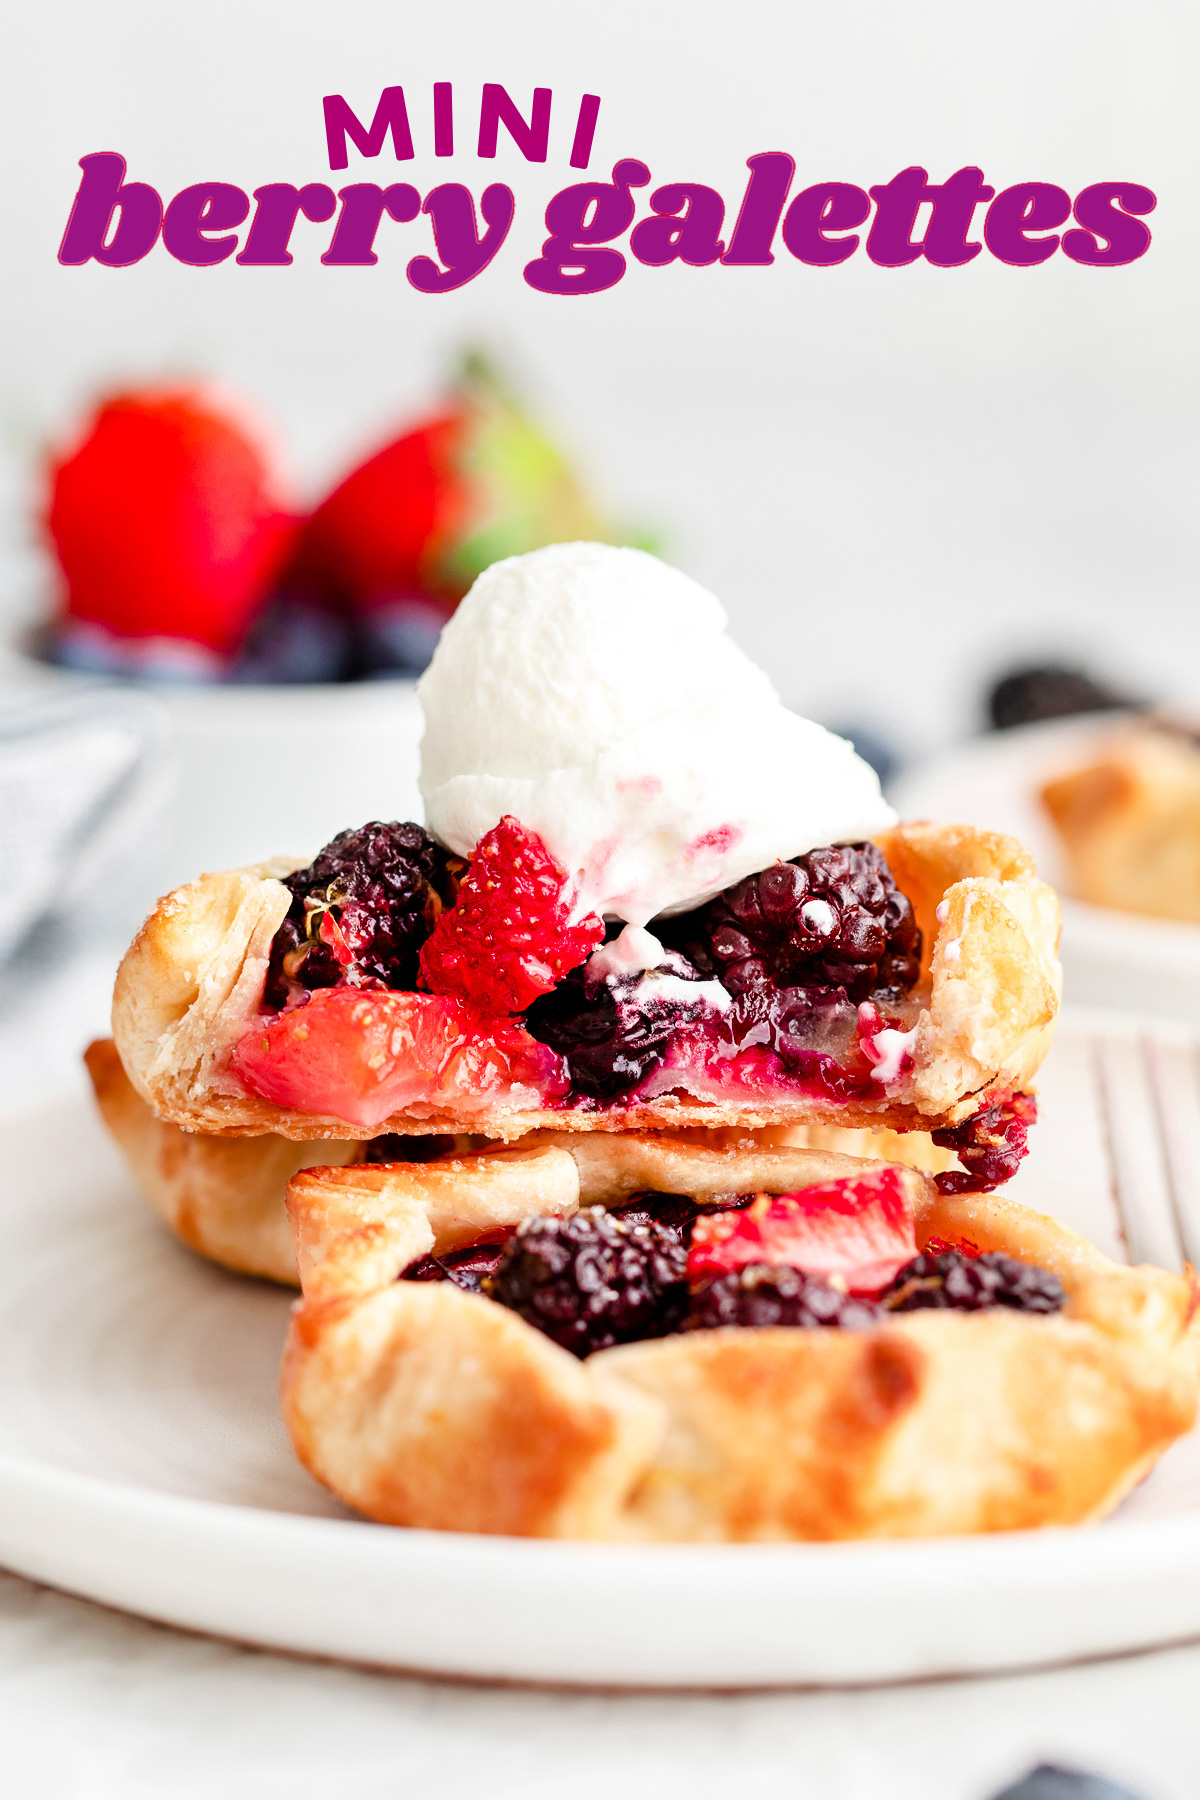 three mini berry galettes on small white plate topped with whipped cream. title overlay at top of image.